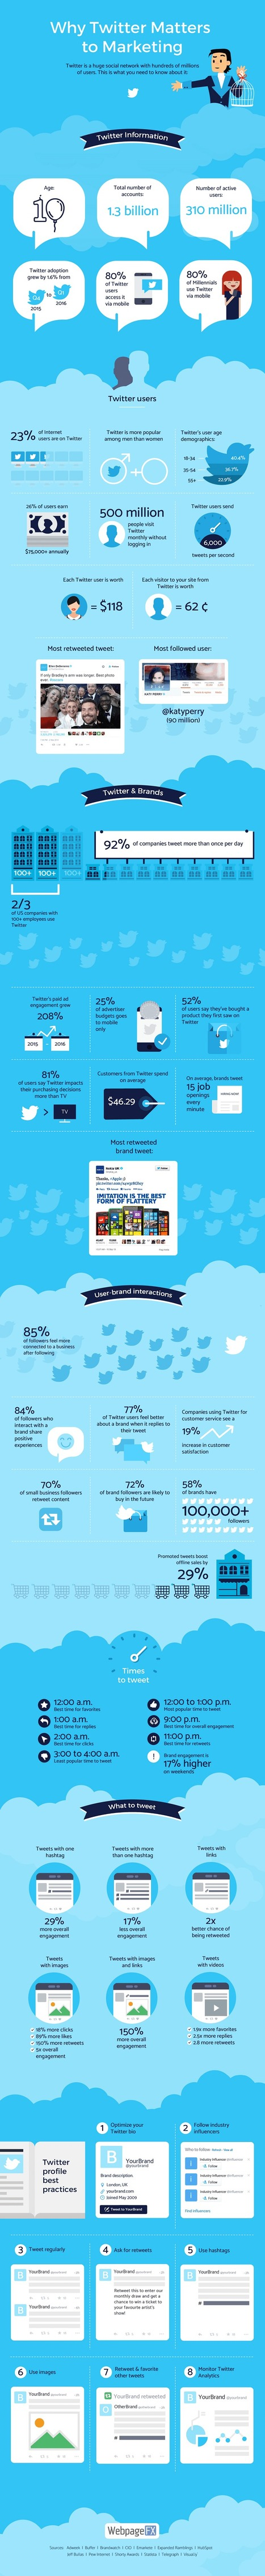 Why Twitter Matters to Marketing #Infographic | MarketingHits | Scoop.it